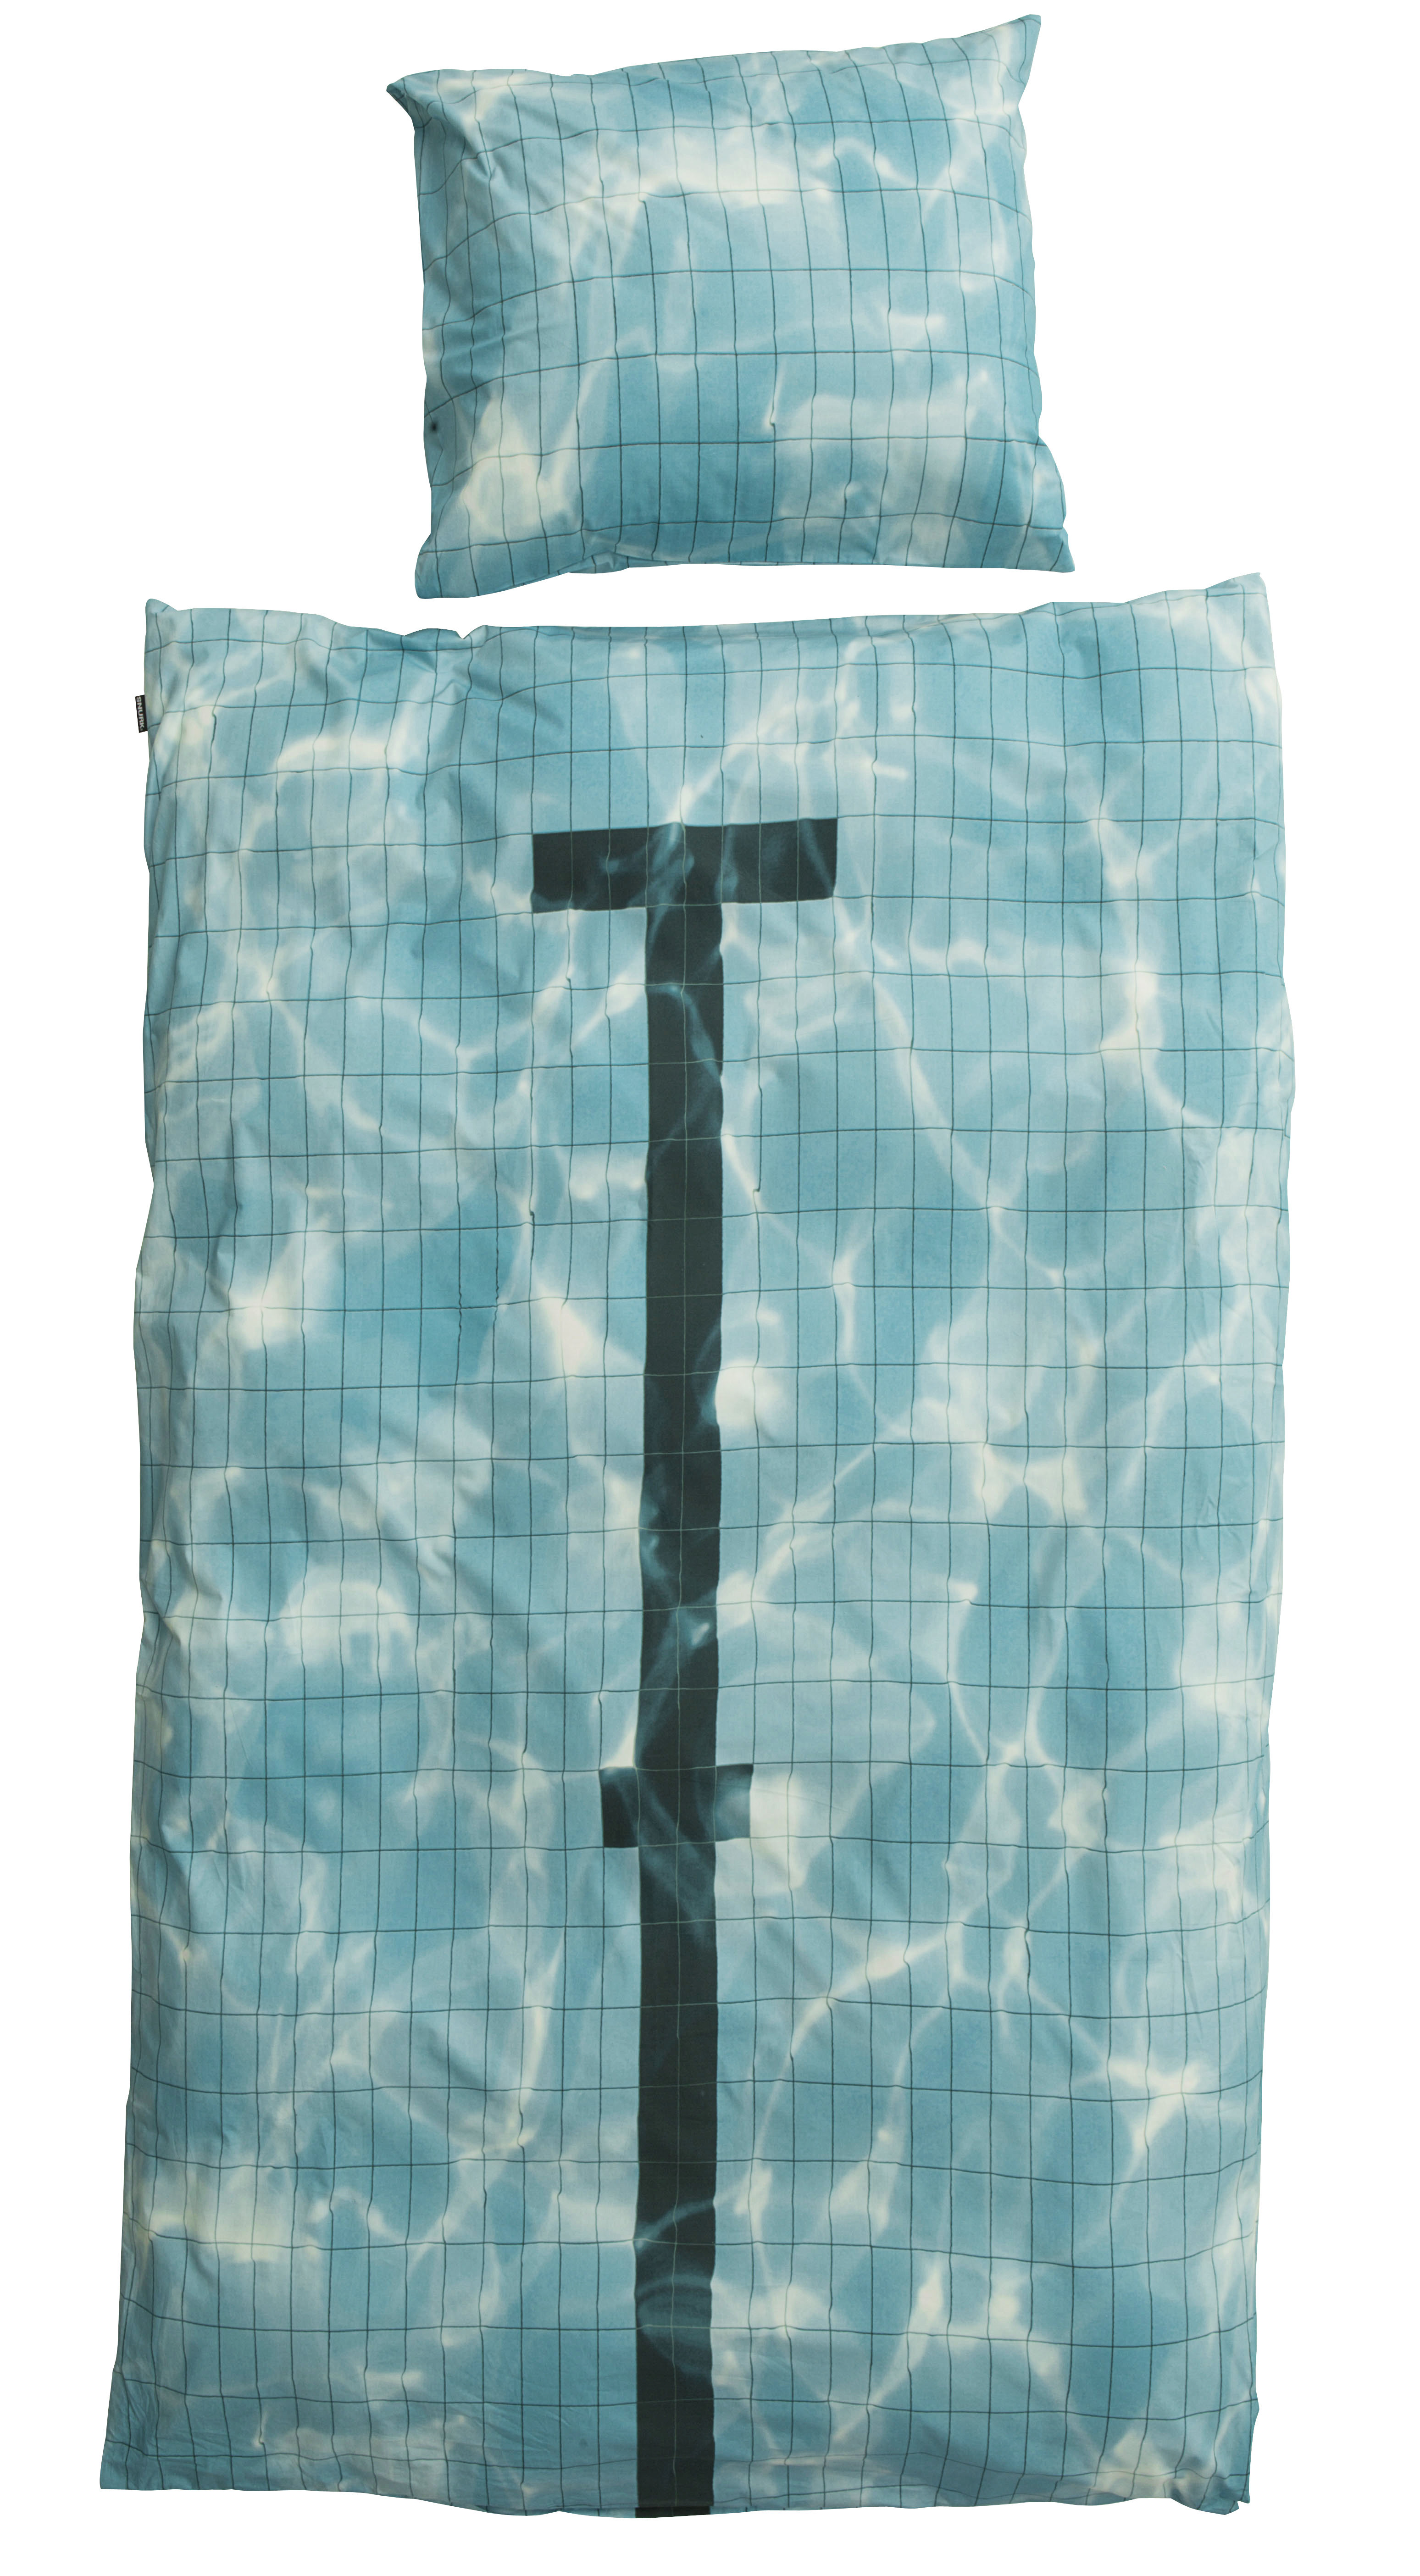 Decoration - Children's Home Accessories - Pool Bedlinen set for 1 person by Snurk - Pool - Cotton percale